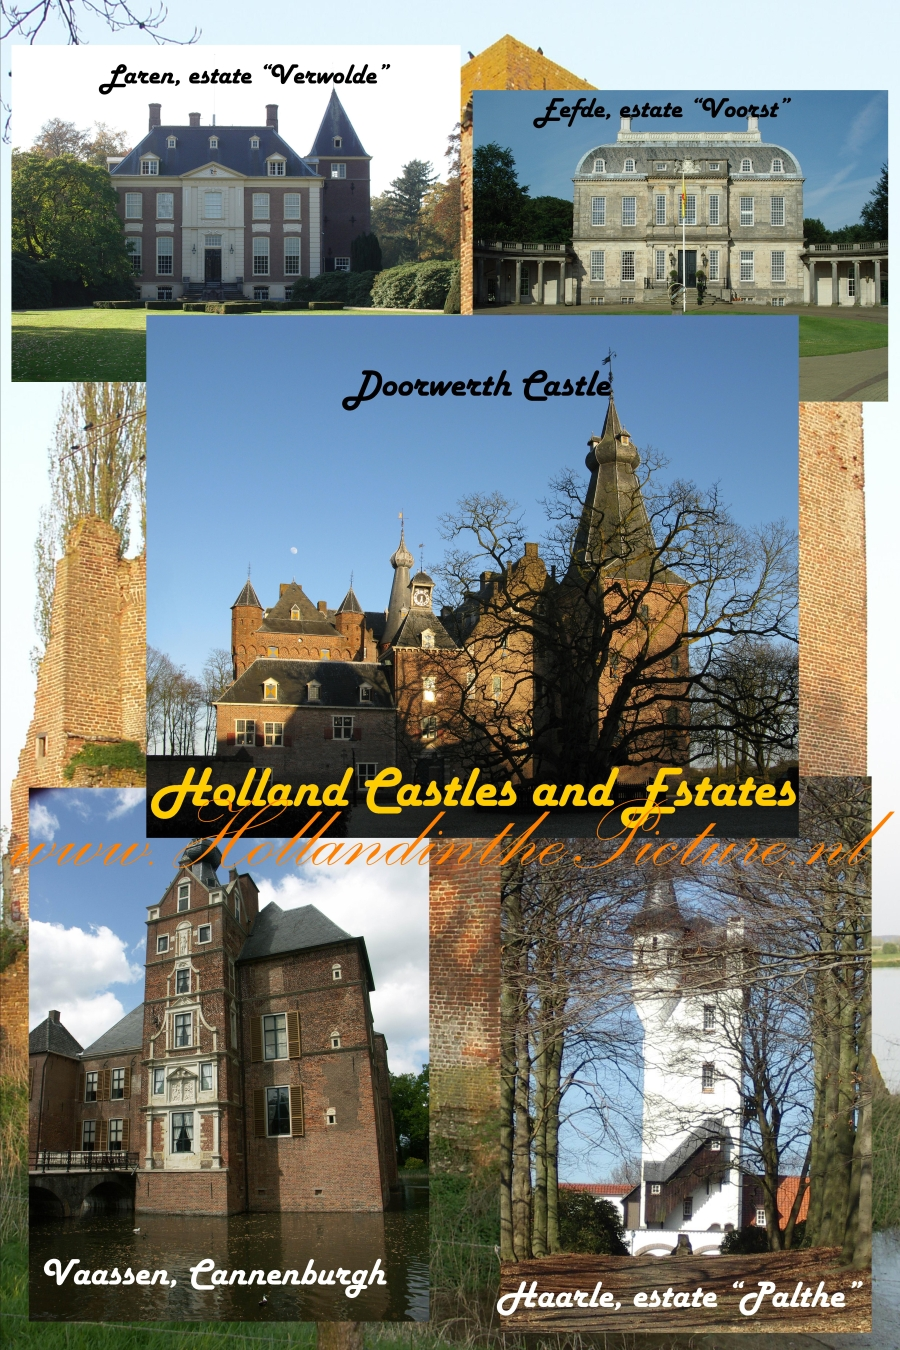 Holland Castles and Estates hp 36 kl